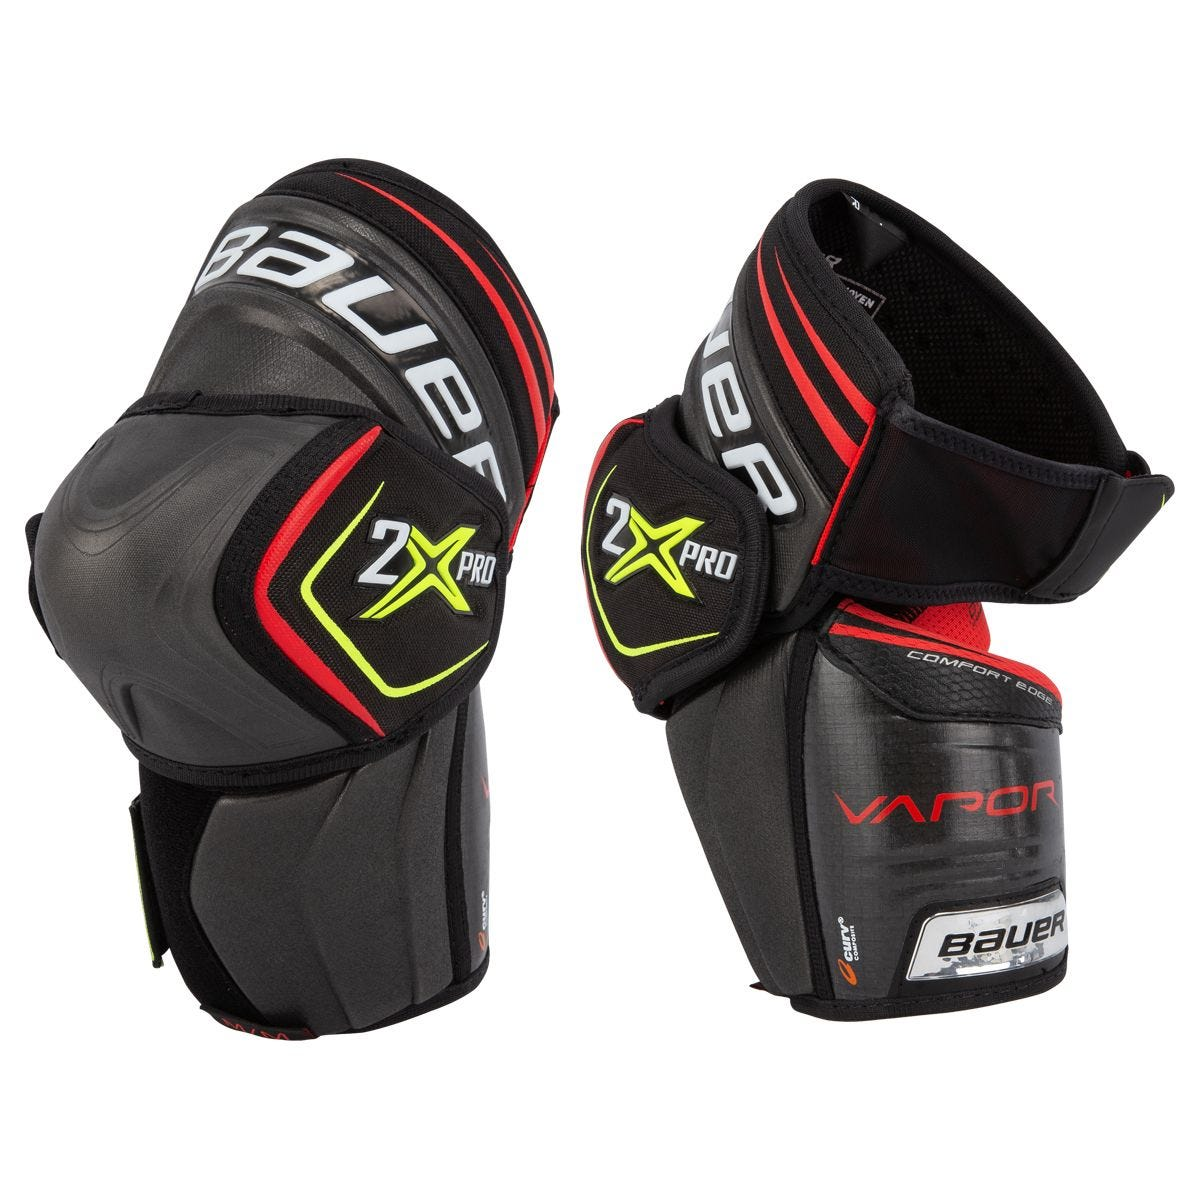 Bauer Vapor 2X Pro Senior Hockey Elbow Pads